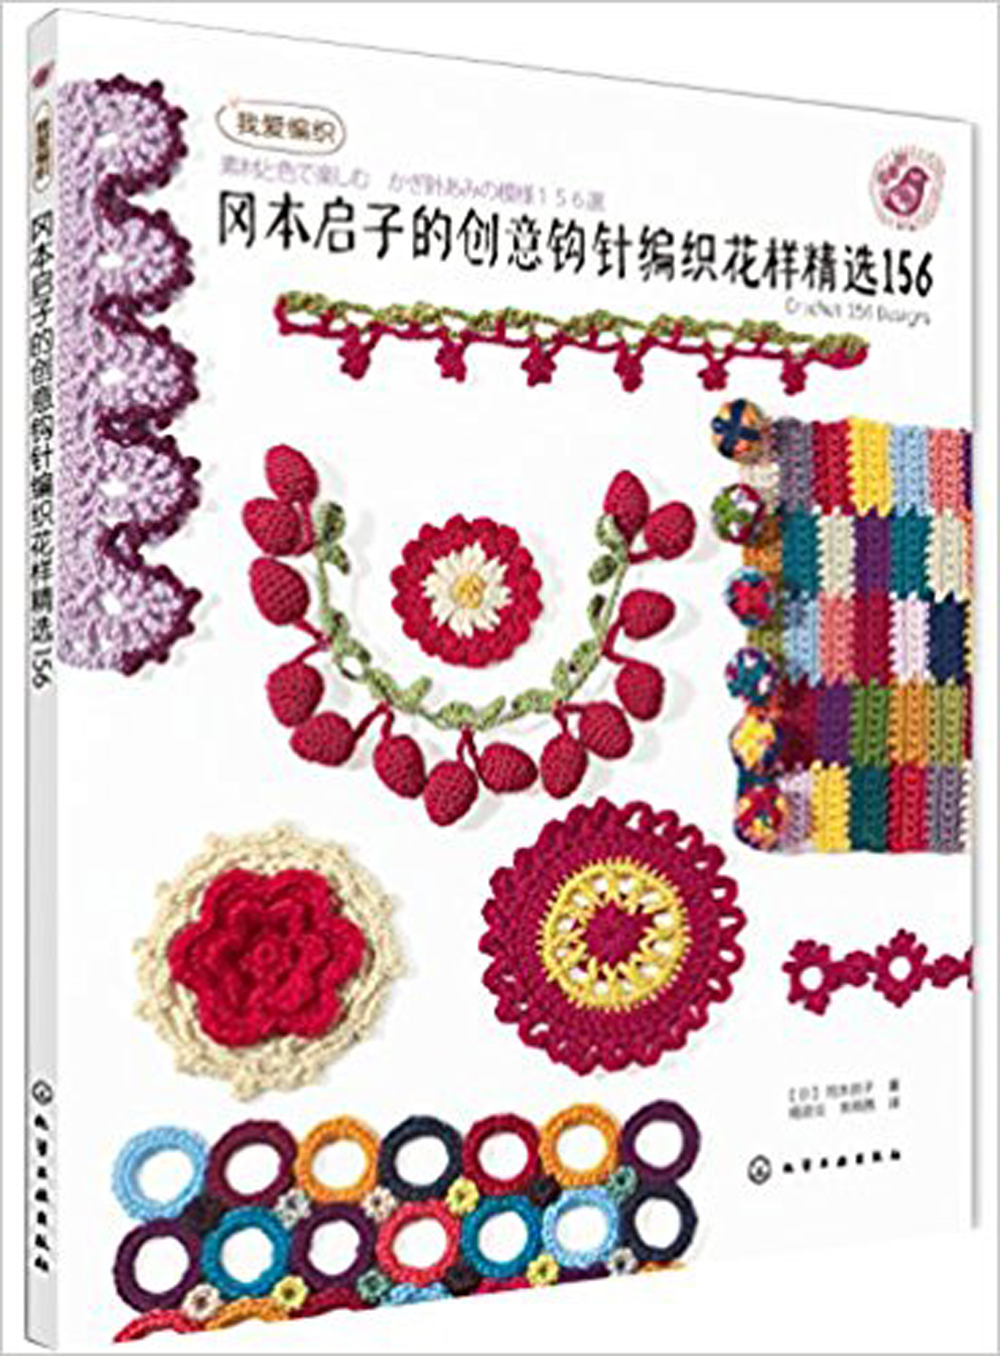 Japanese Knitting Patterns Book In Chinese Creative Needle Knitting Pattern And Crochet Pattern Tutorial Book